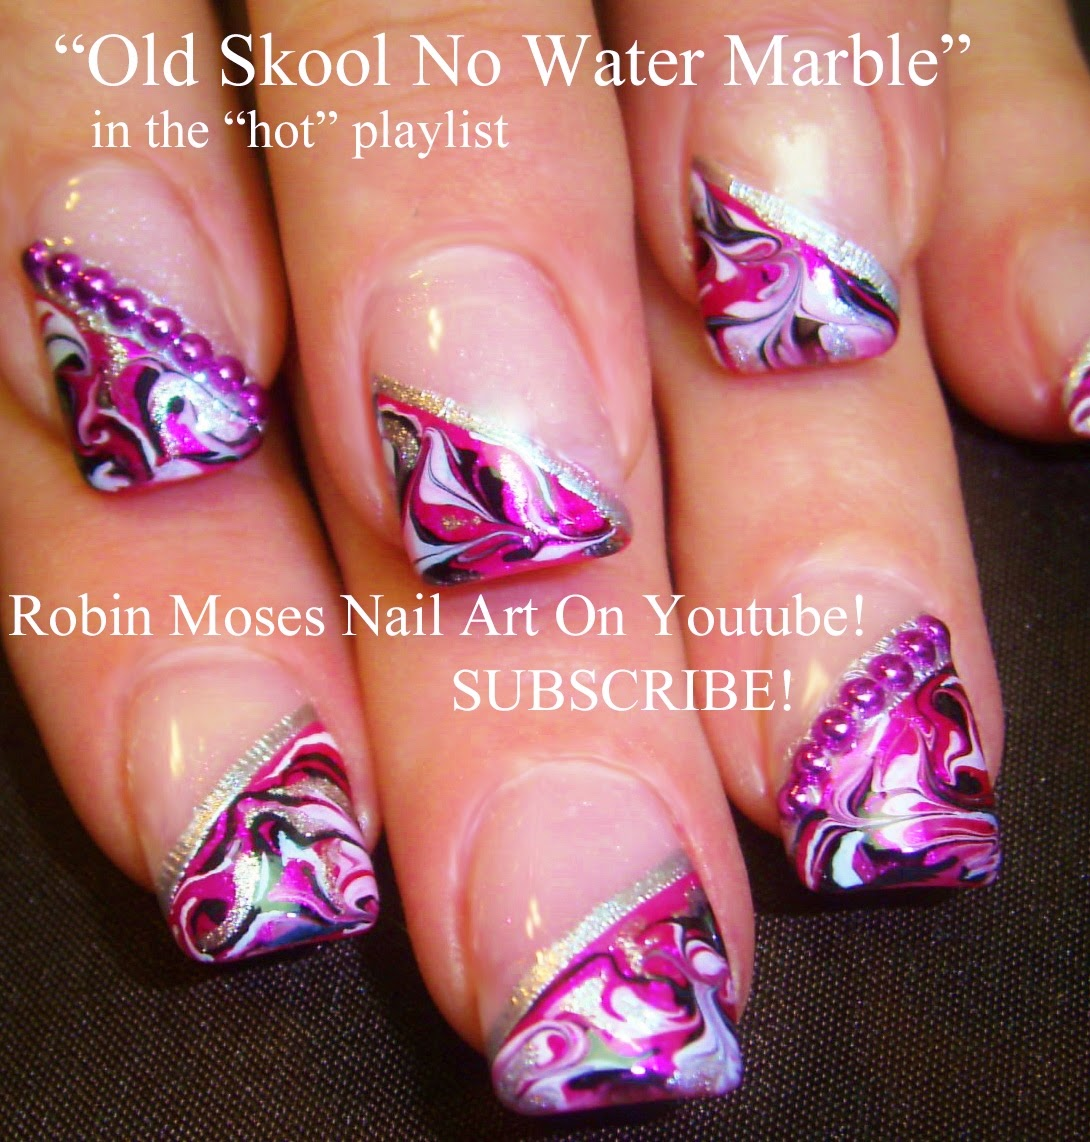 Kbshimmer Spring 2014 Chevron Dot Nail Art Easter Design: Posted By Robin Moses At 9:23 AM